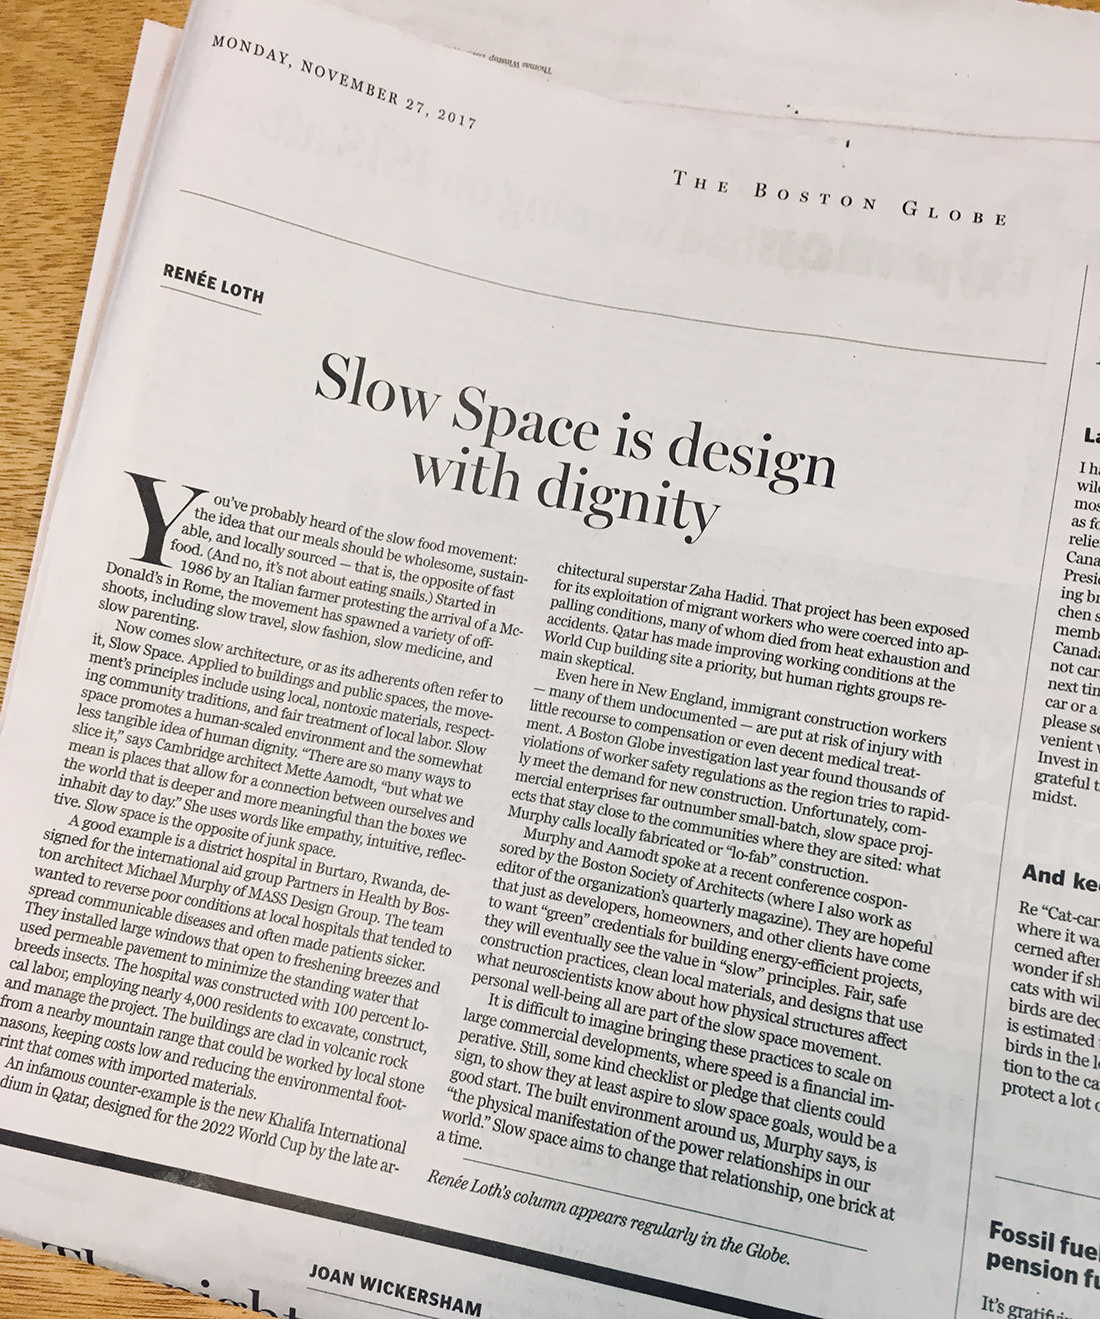 Boston Globe Spreads the Word About Slow Space Movement